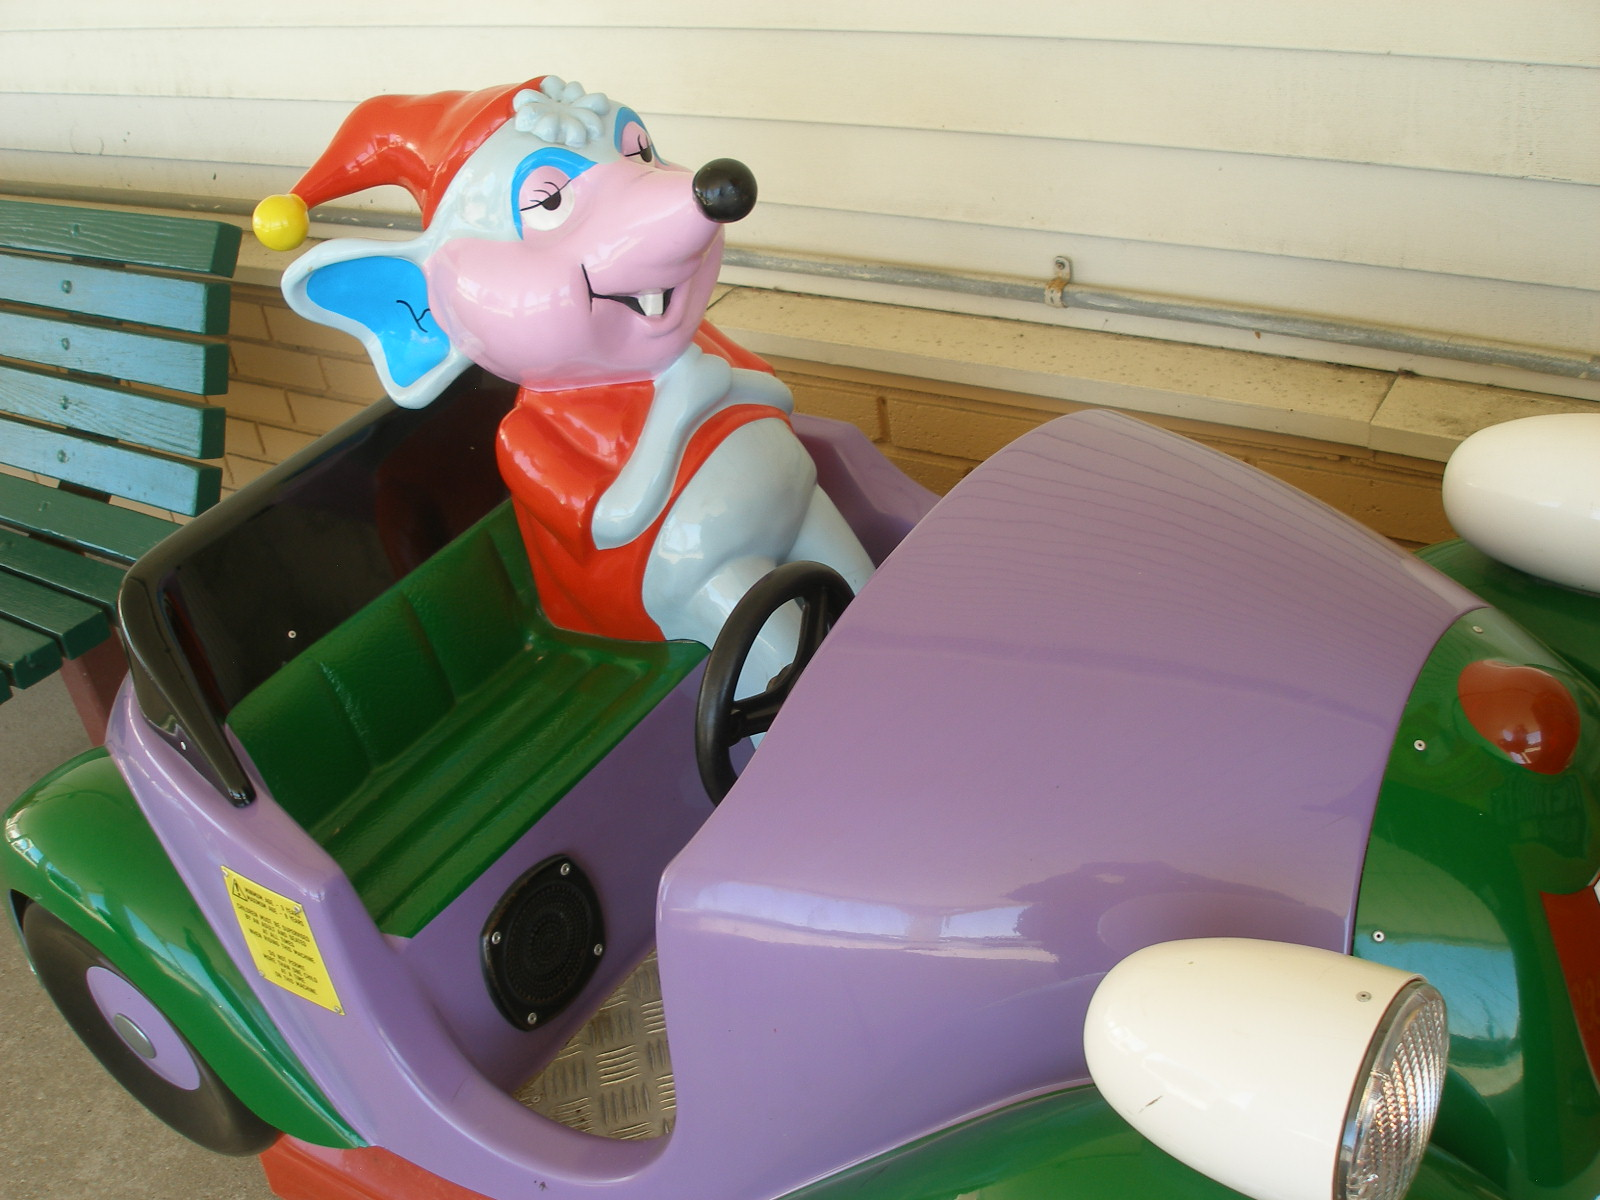 Jsh S Visual Slushpile Children S Coin Operated Rides Of